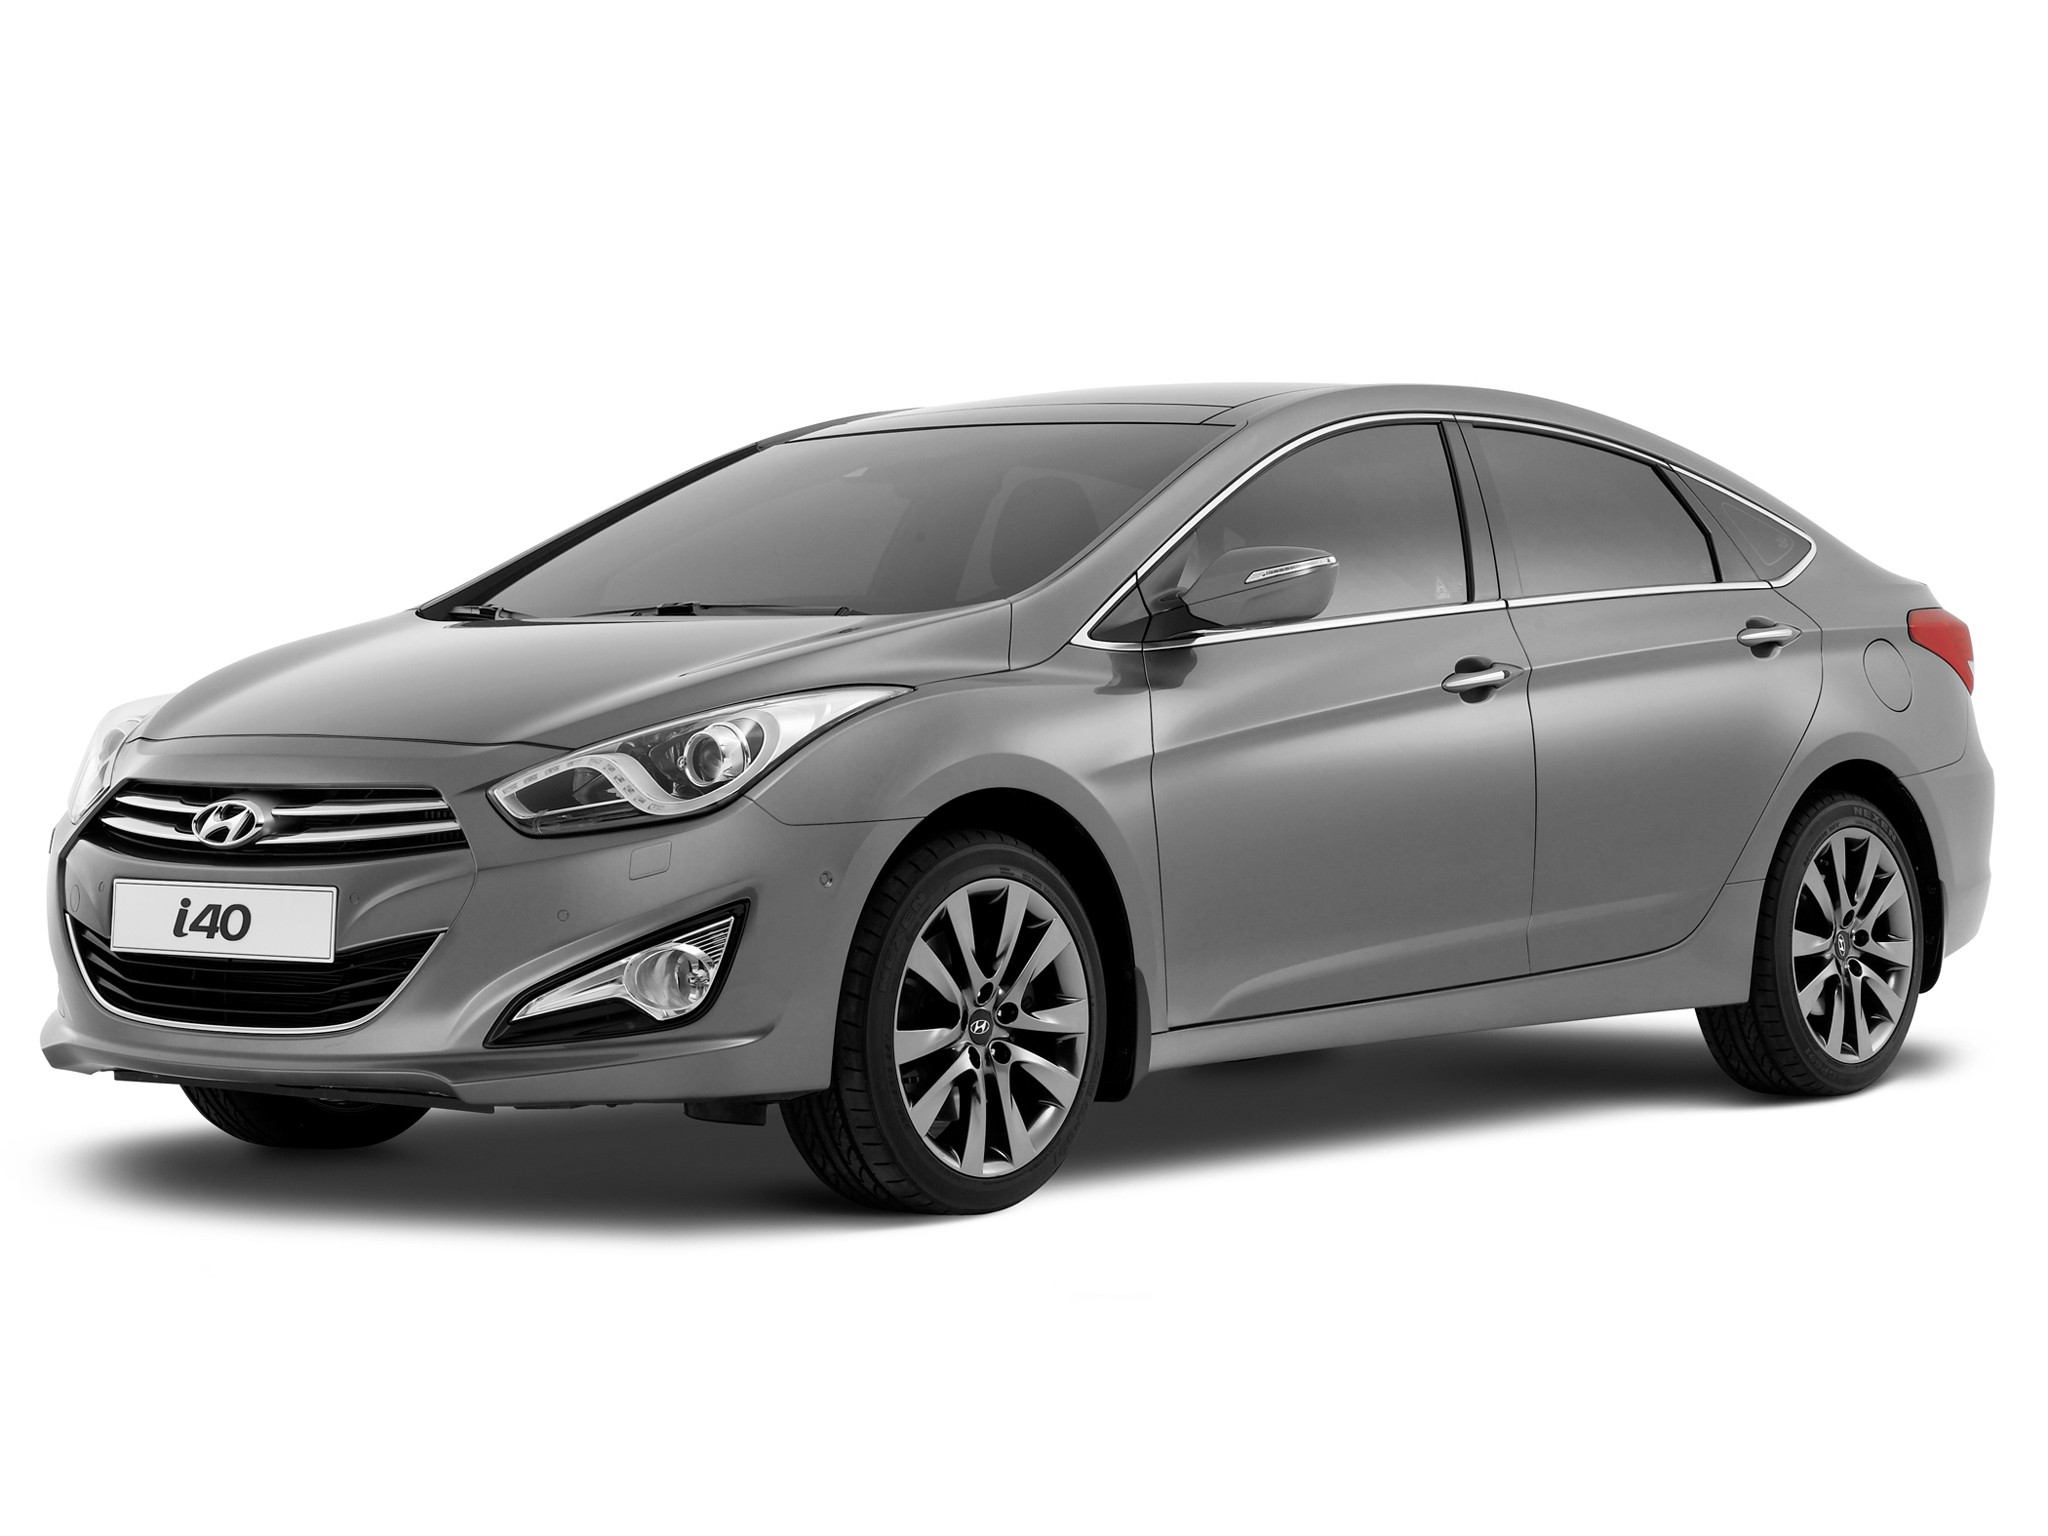 hyundai i40 saloon specs photos 2011 2012 2013 2014 2015 2016 2017 2018 autoevolution. Black Bedroom Furniture Sets. Home Design Ideas